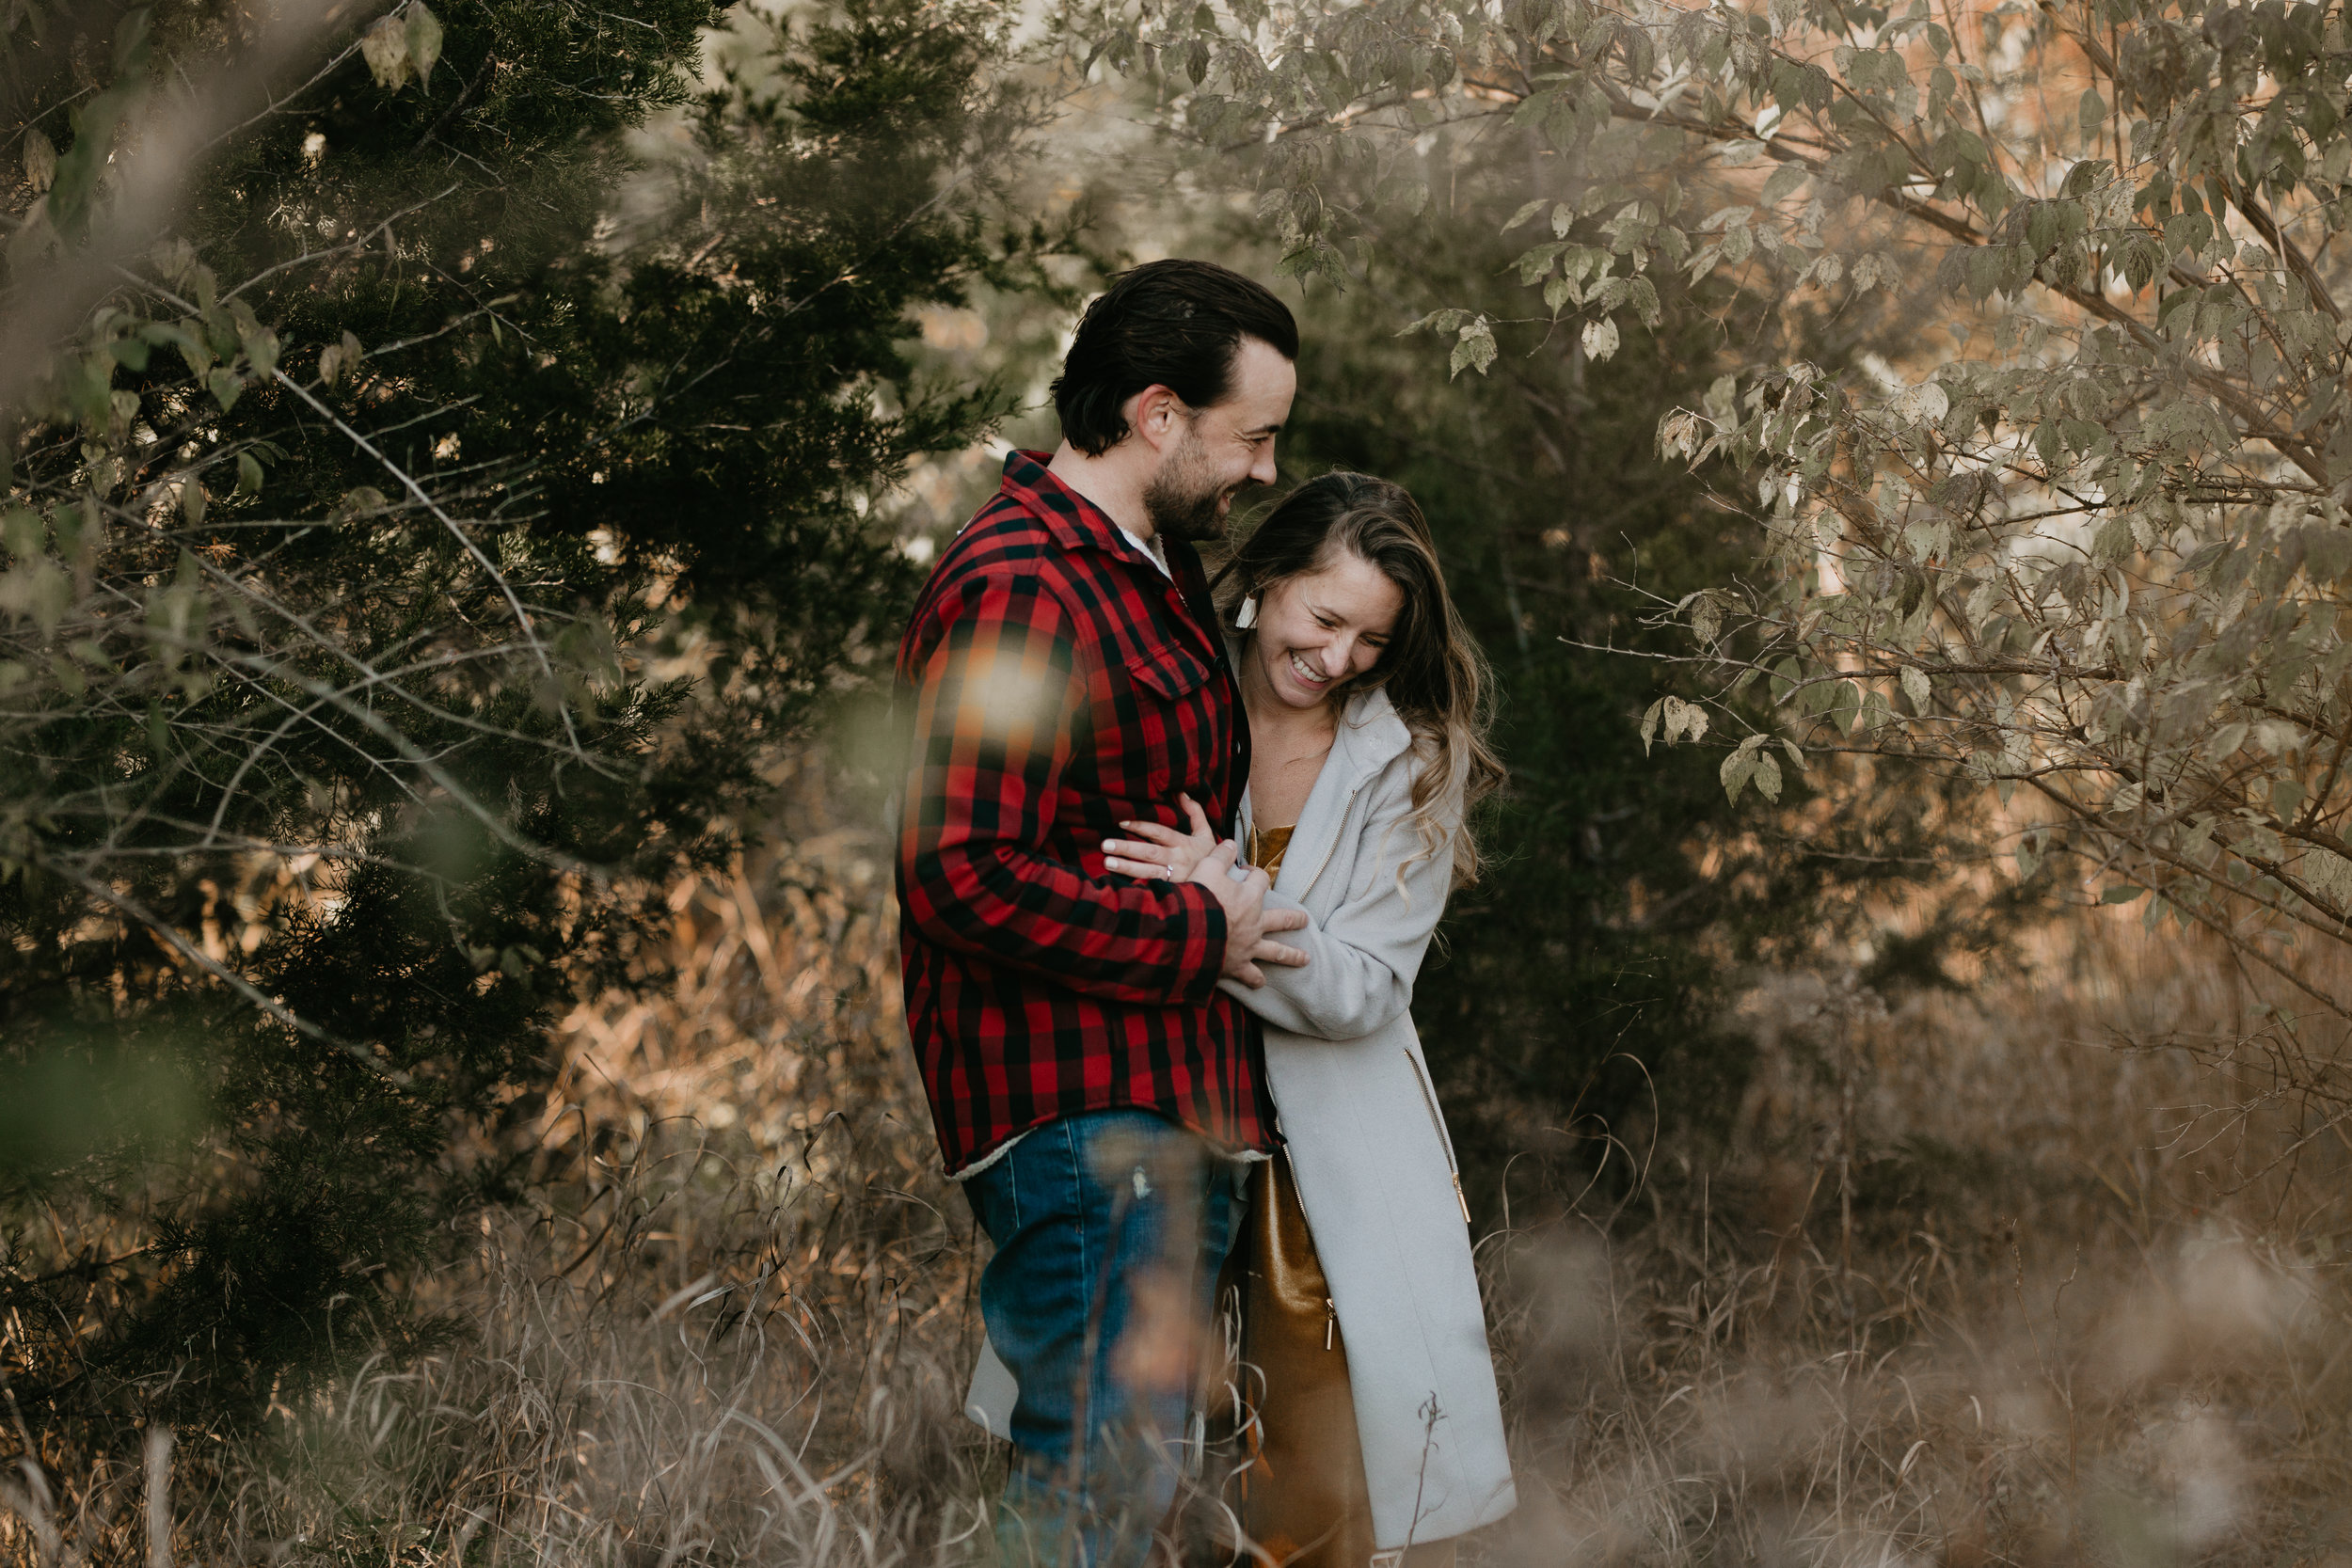 nicole-daacke-photography-white-cliffs-of-conoy-in-lancaster-pa-pennsylvania-adventure-session-adventure-elopement-photographer-engagement session-in-lancaster-pa-photographer-golden-sunset-winter-solstice-wedding-riverside-elopement-4610.jpg